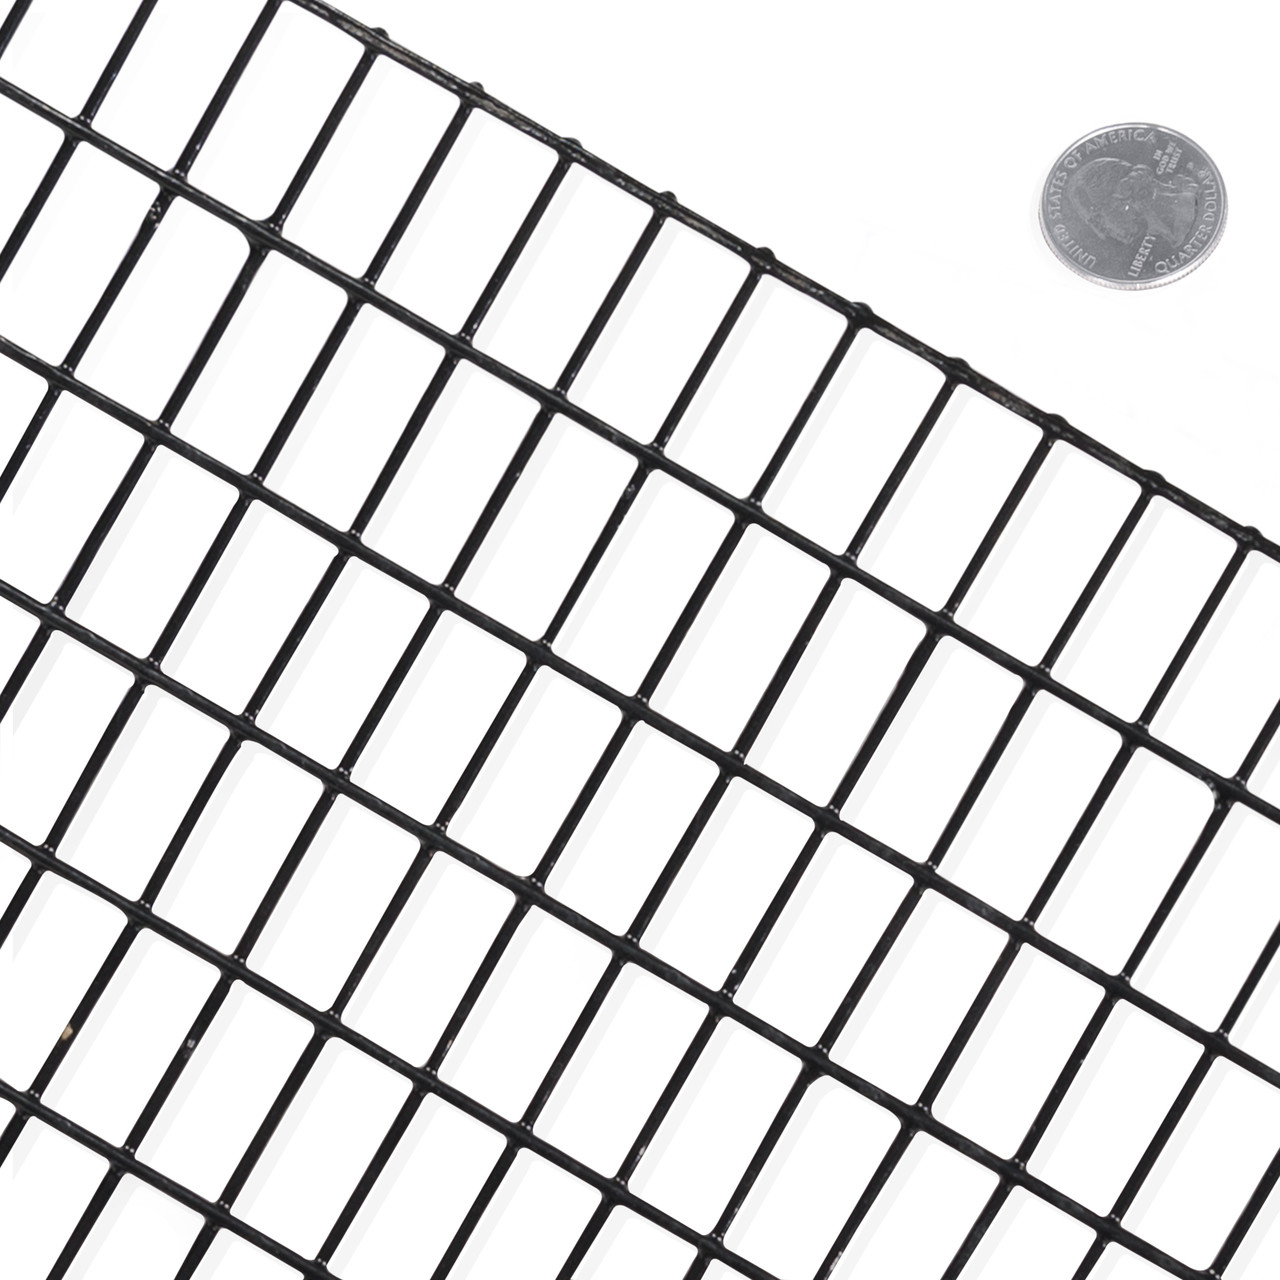 16 Gauge Black Vinyl Coated Welded Wire Mesh Size 0.5 inch by 1 inch ...